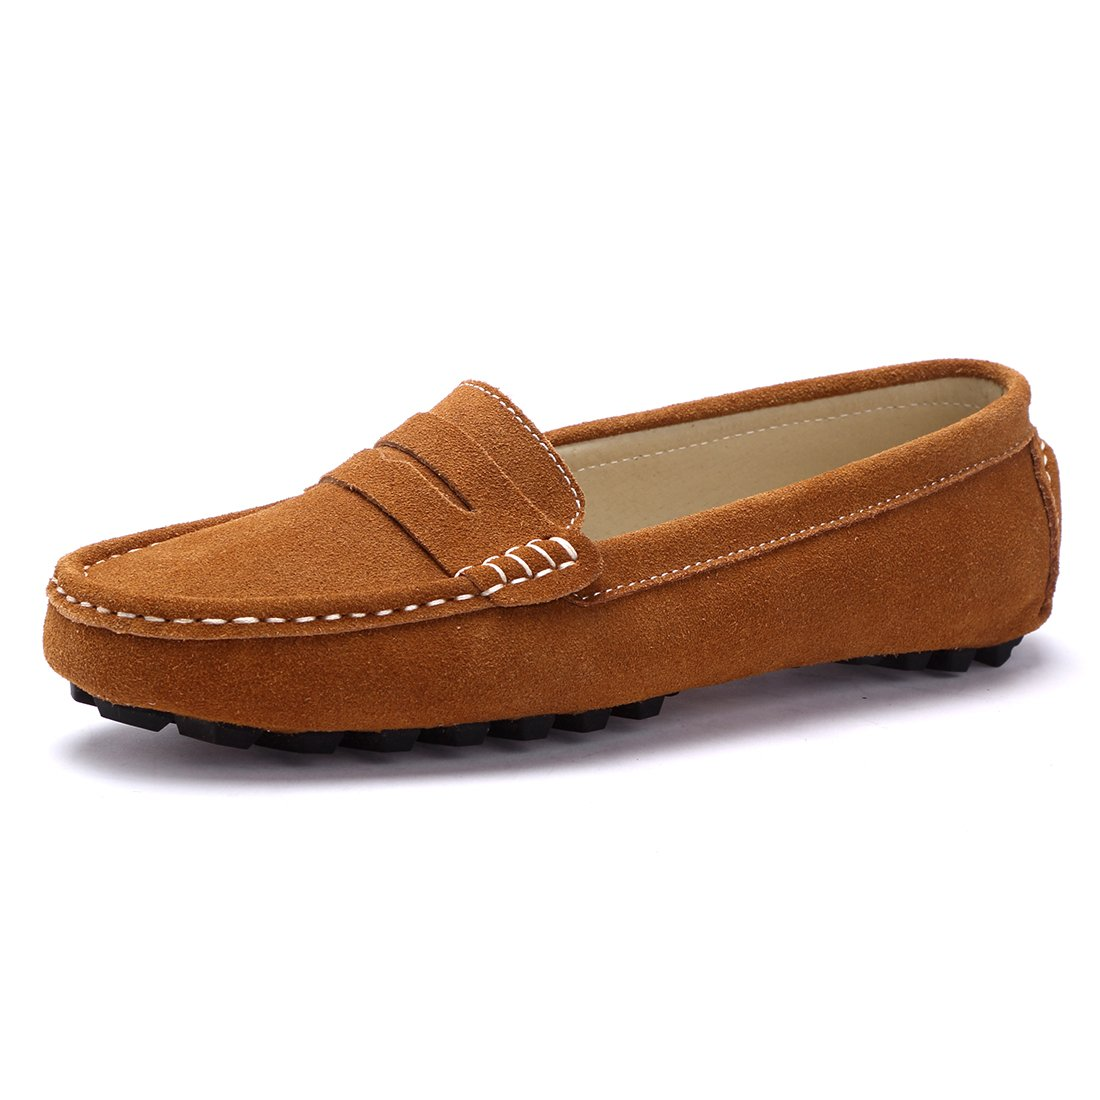 SUNROLAN Casual Women's Suede Leather Driving Moccasins Slip-On Penny Loafers Boat Shoes Flats (11 B(M) US, Light Brown)